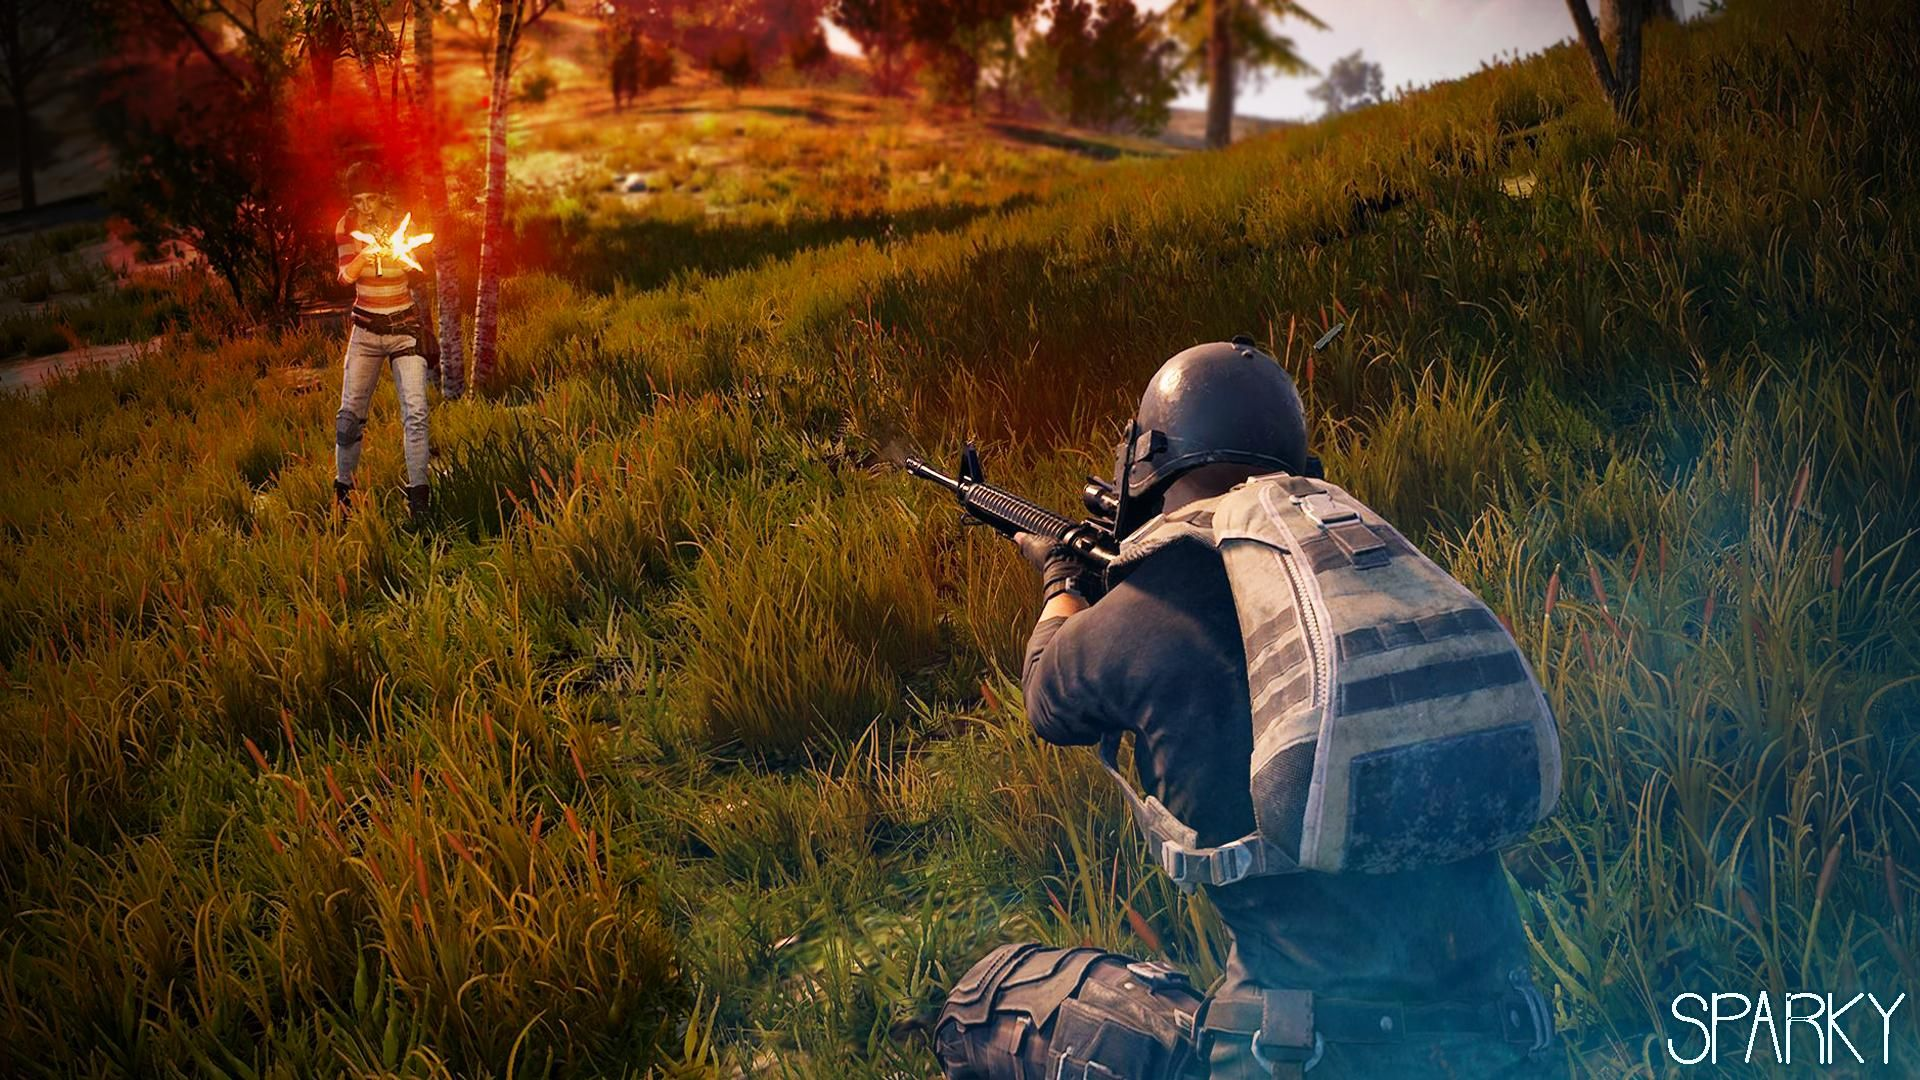 No Pubg Wallpaper: Pin On IPhone 6S Plus Wallpapers Must To Have